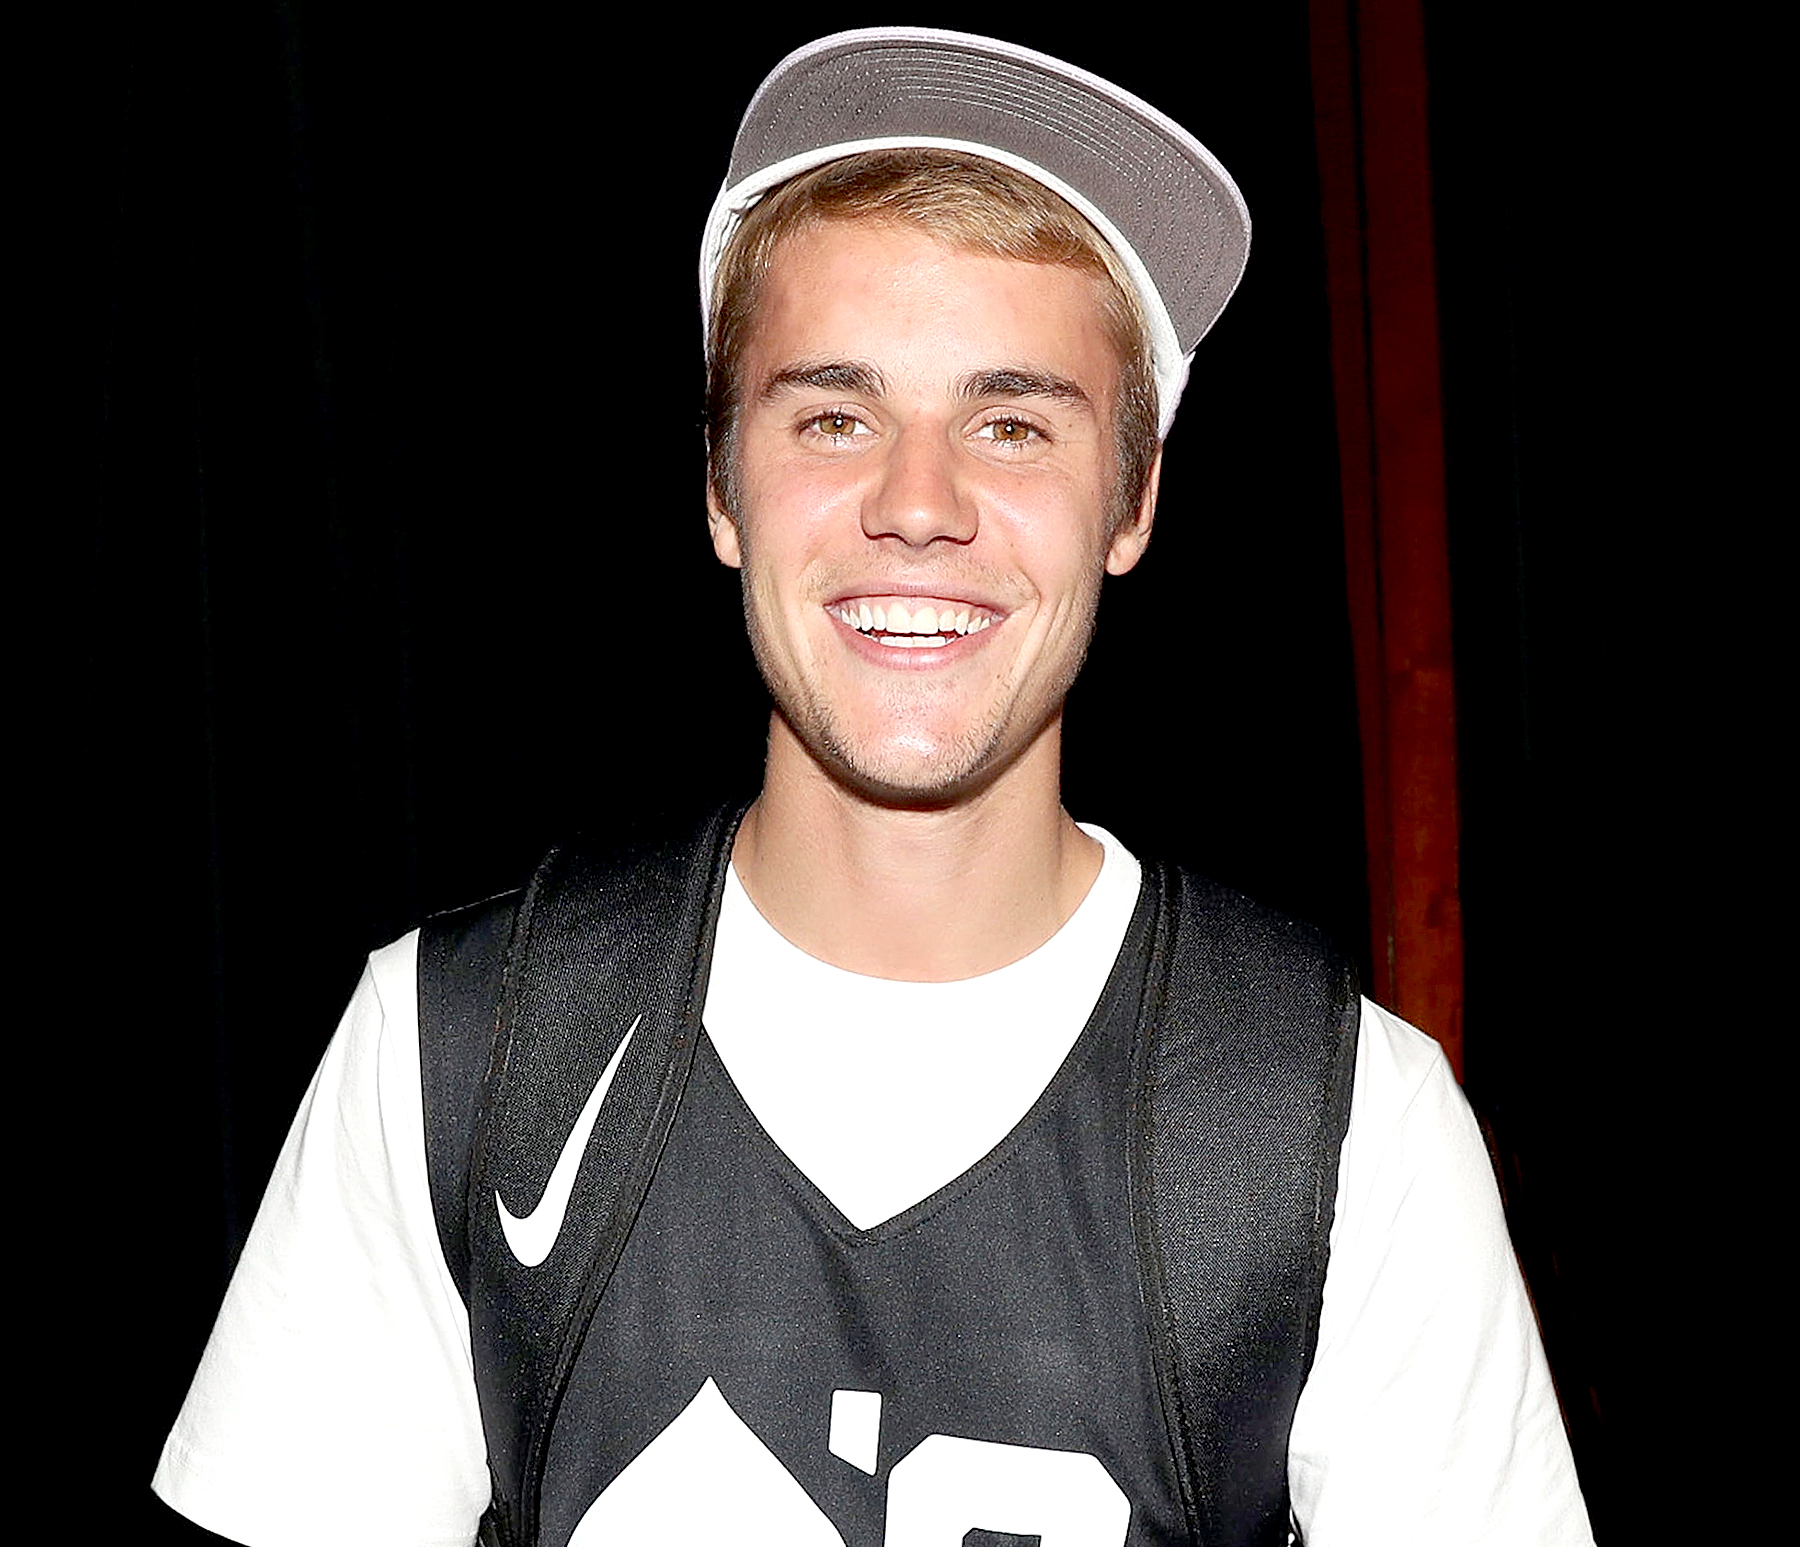 Justin Bieber attends the Aces Charity Celebrity Basketball Game at Madison Square Garden in New York City on August 13, 2017.